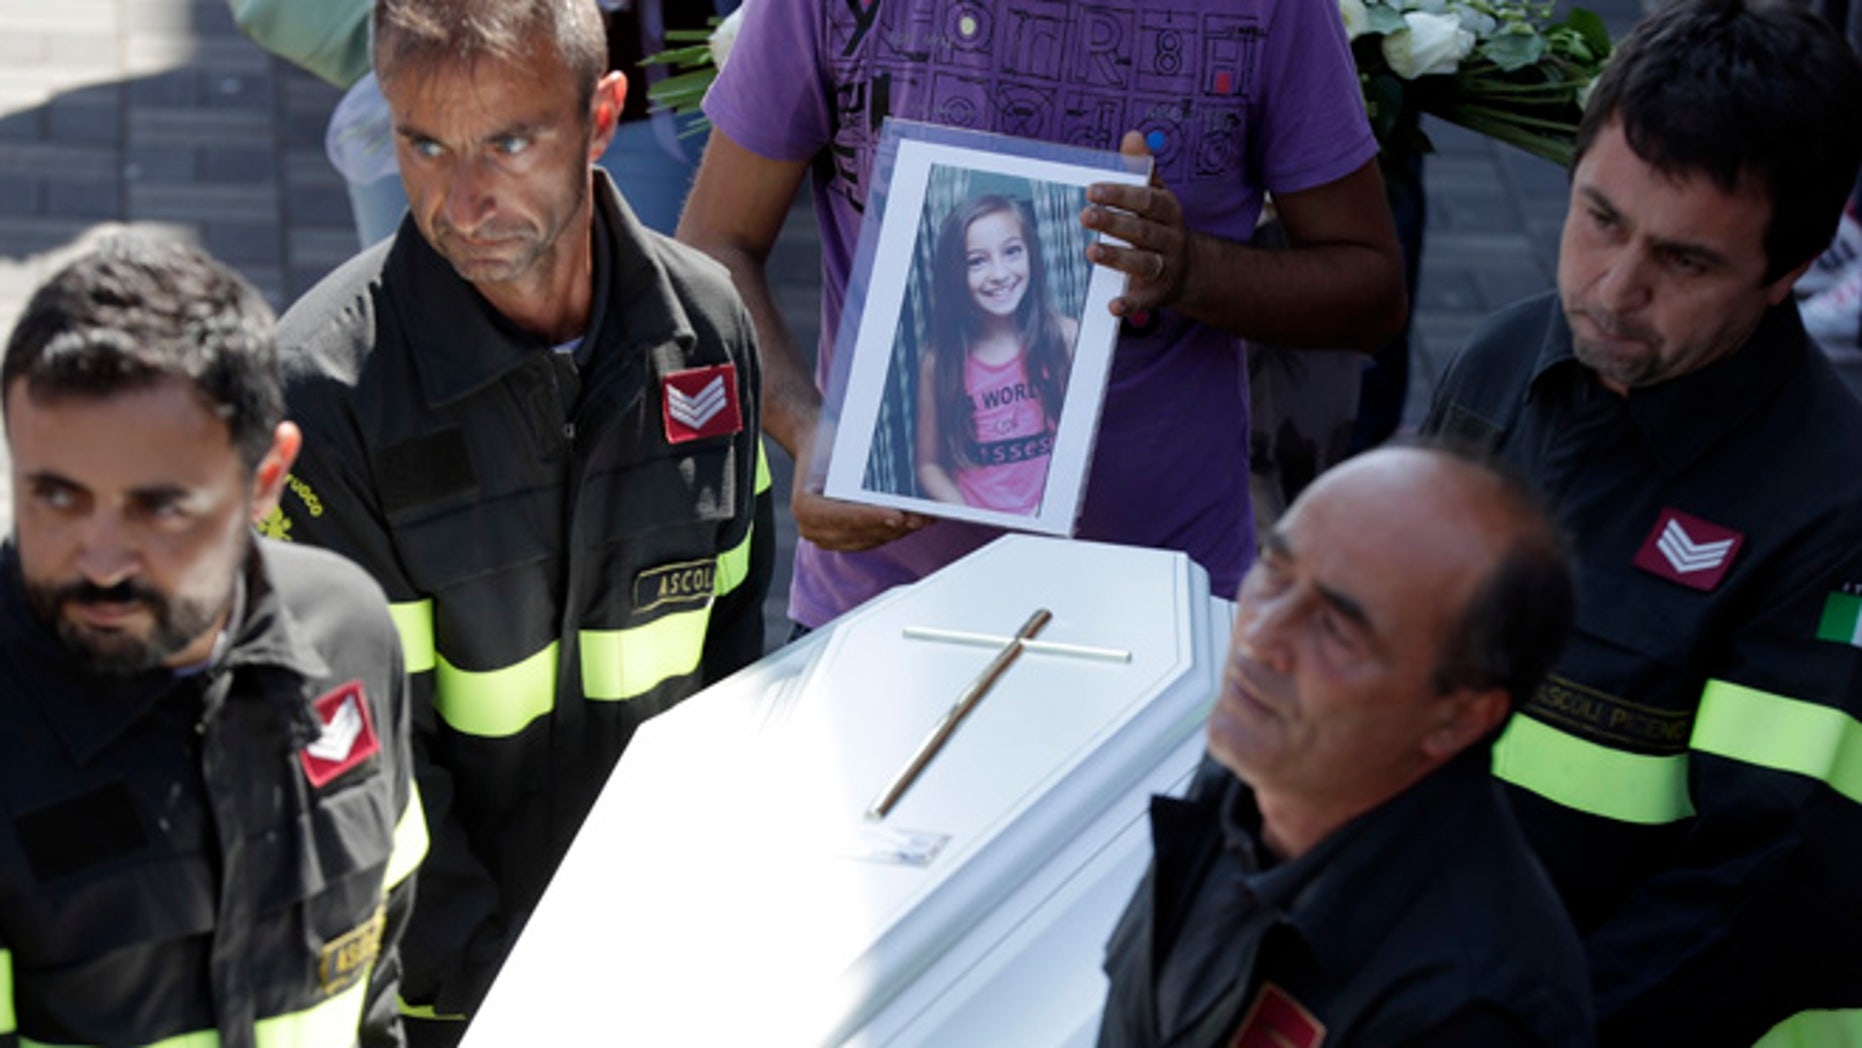 The coffin of Giulia, 9 years old, is carried outside the gymnasium at the end of the state funeral service in Ascoli Piceno, Italy,.